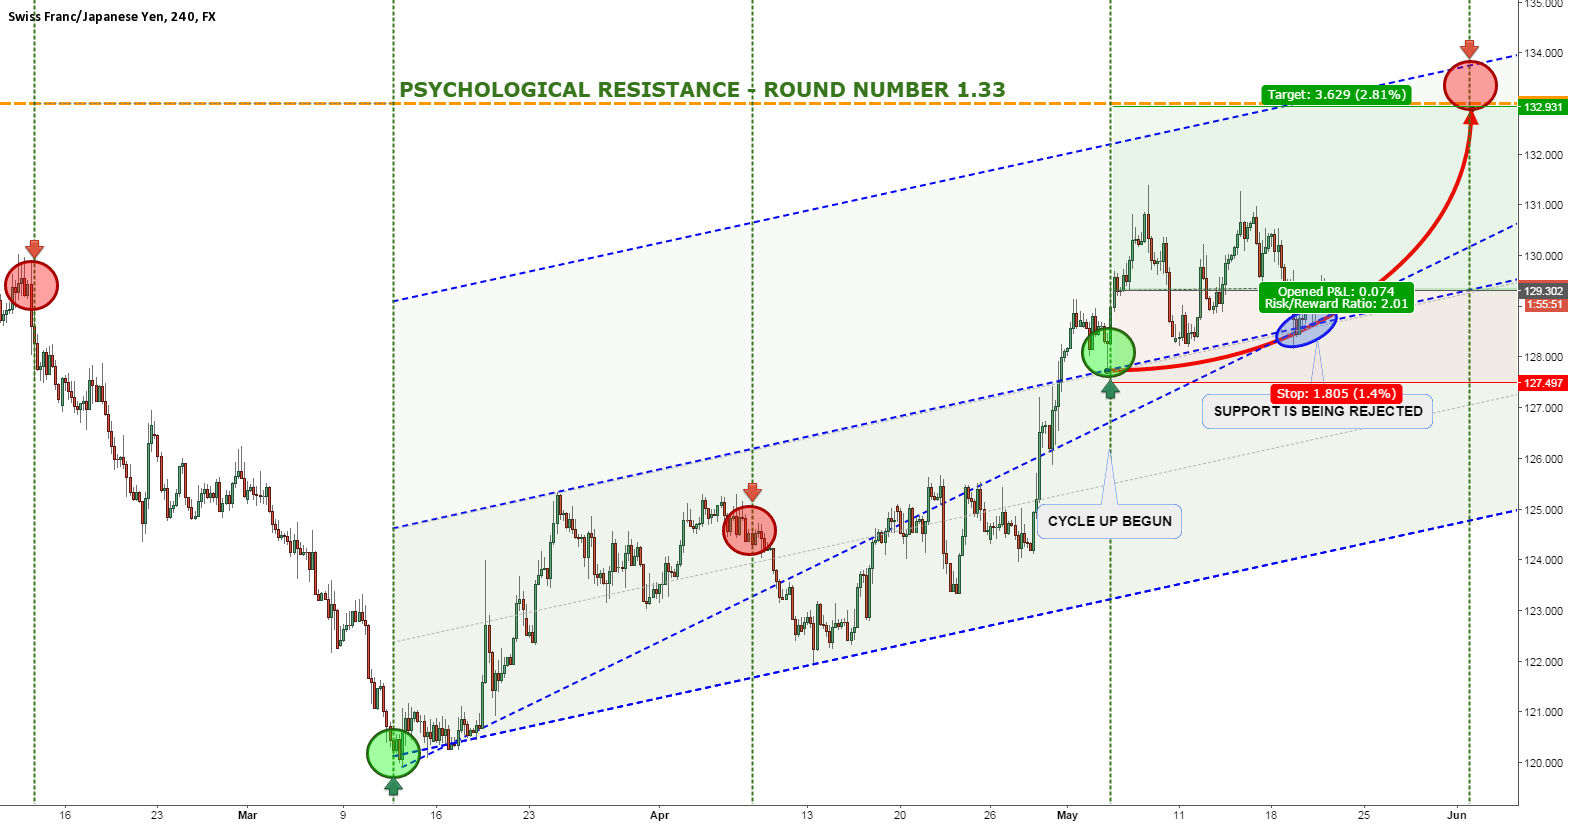 CHFJPY RALLY CONTINUES